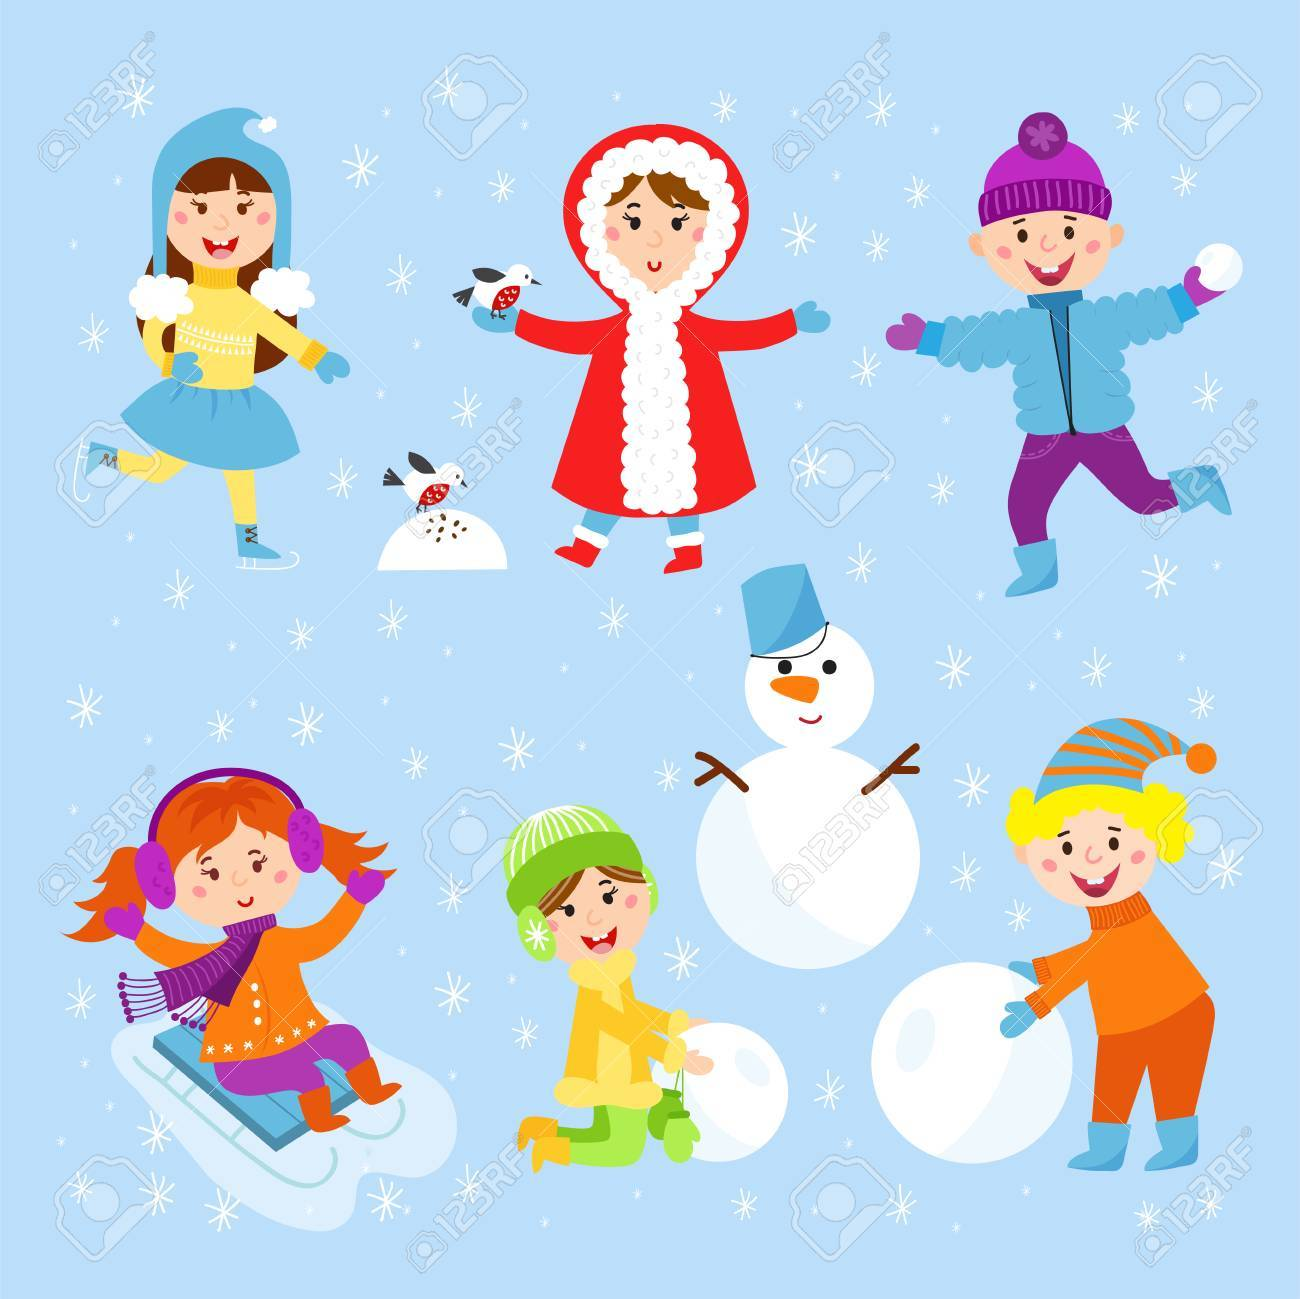 christmas kids playing winter games children playing snowballs cartoon new year holidays vector characters illustration